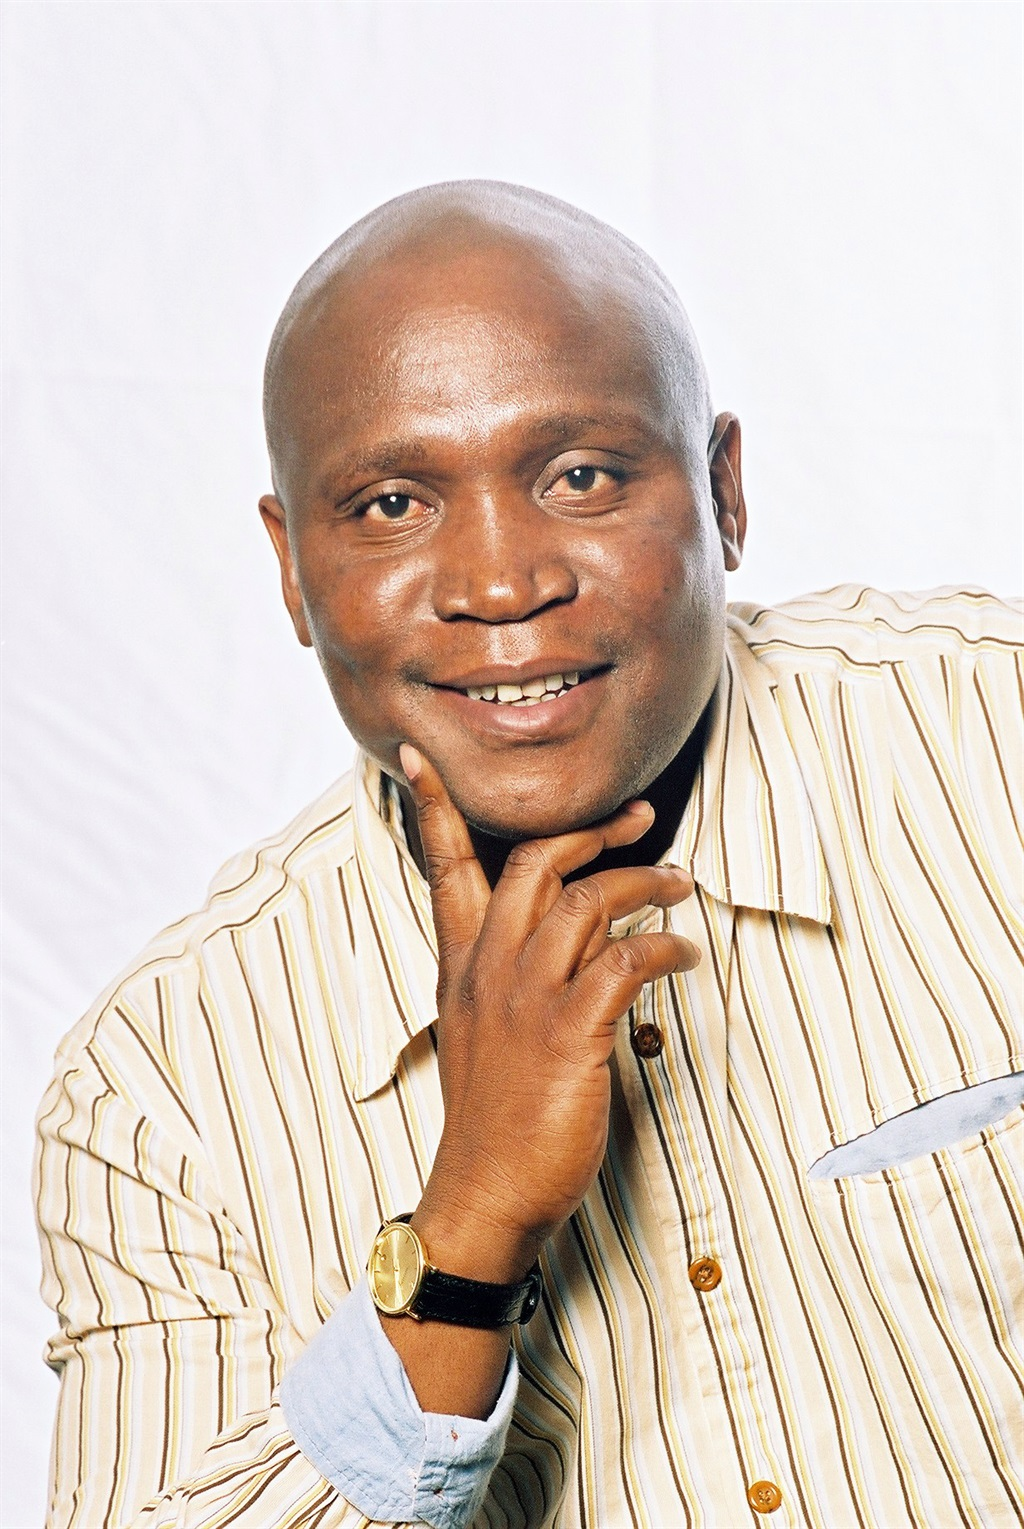 """Vusi """"Rio"""" Mabunda makes a turned to the SABC's Ligwalagwala FM as the station manager after being fired 15 months ago."""